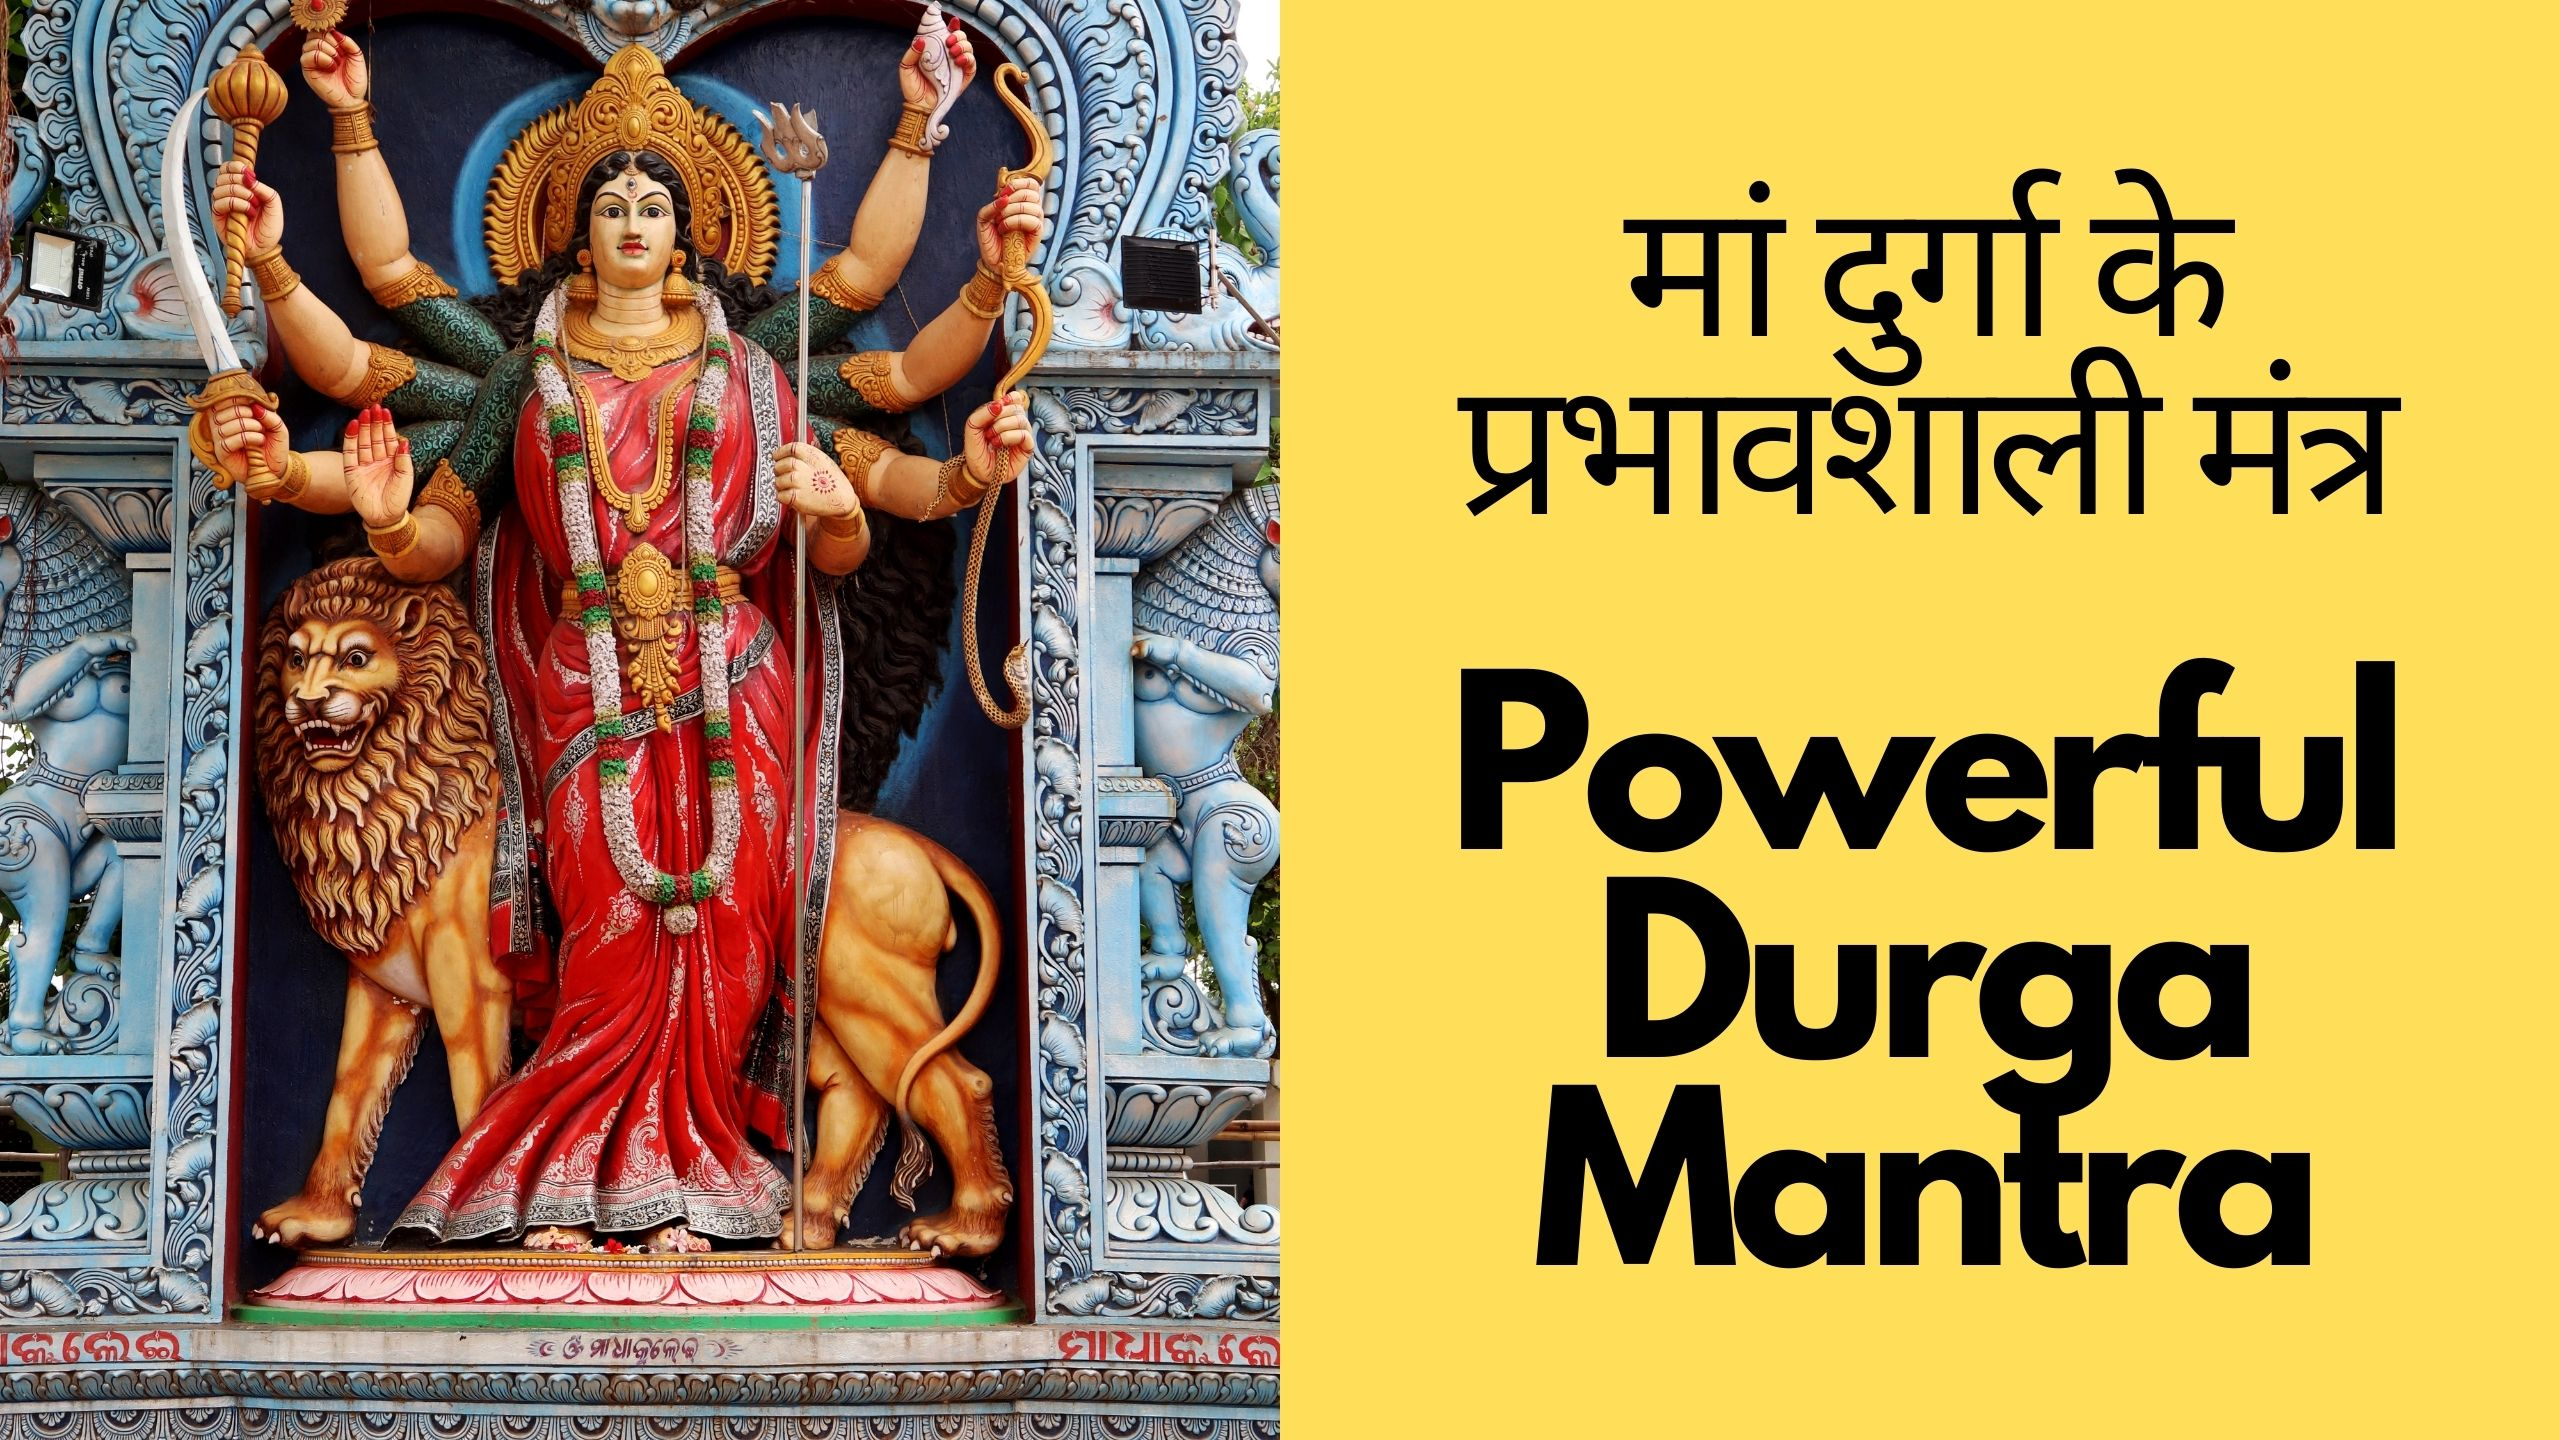 Powerful Durga Mantra